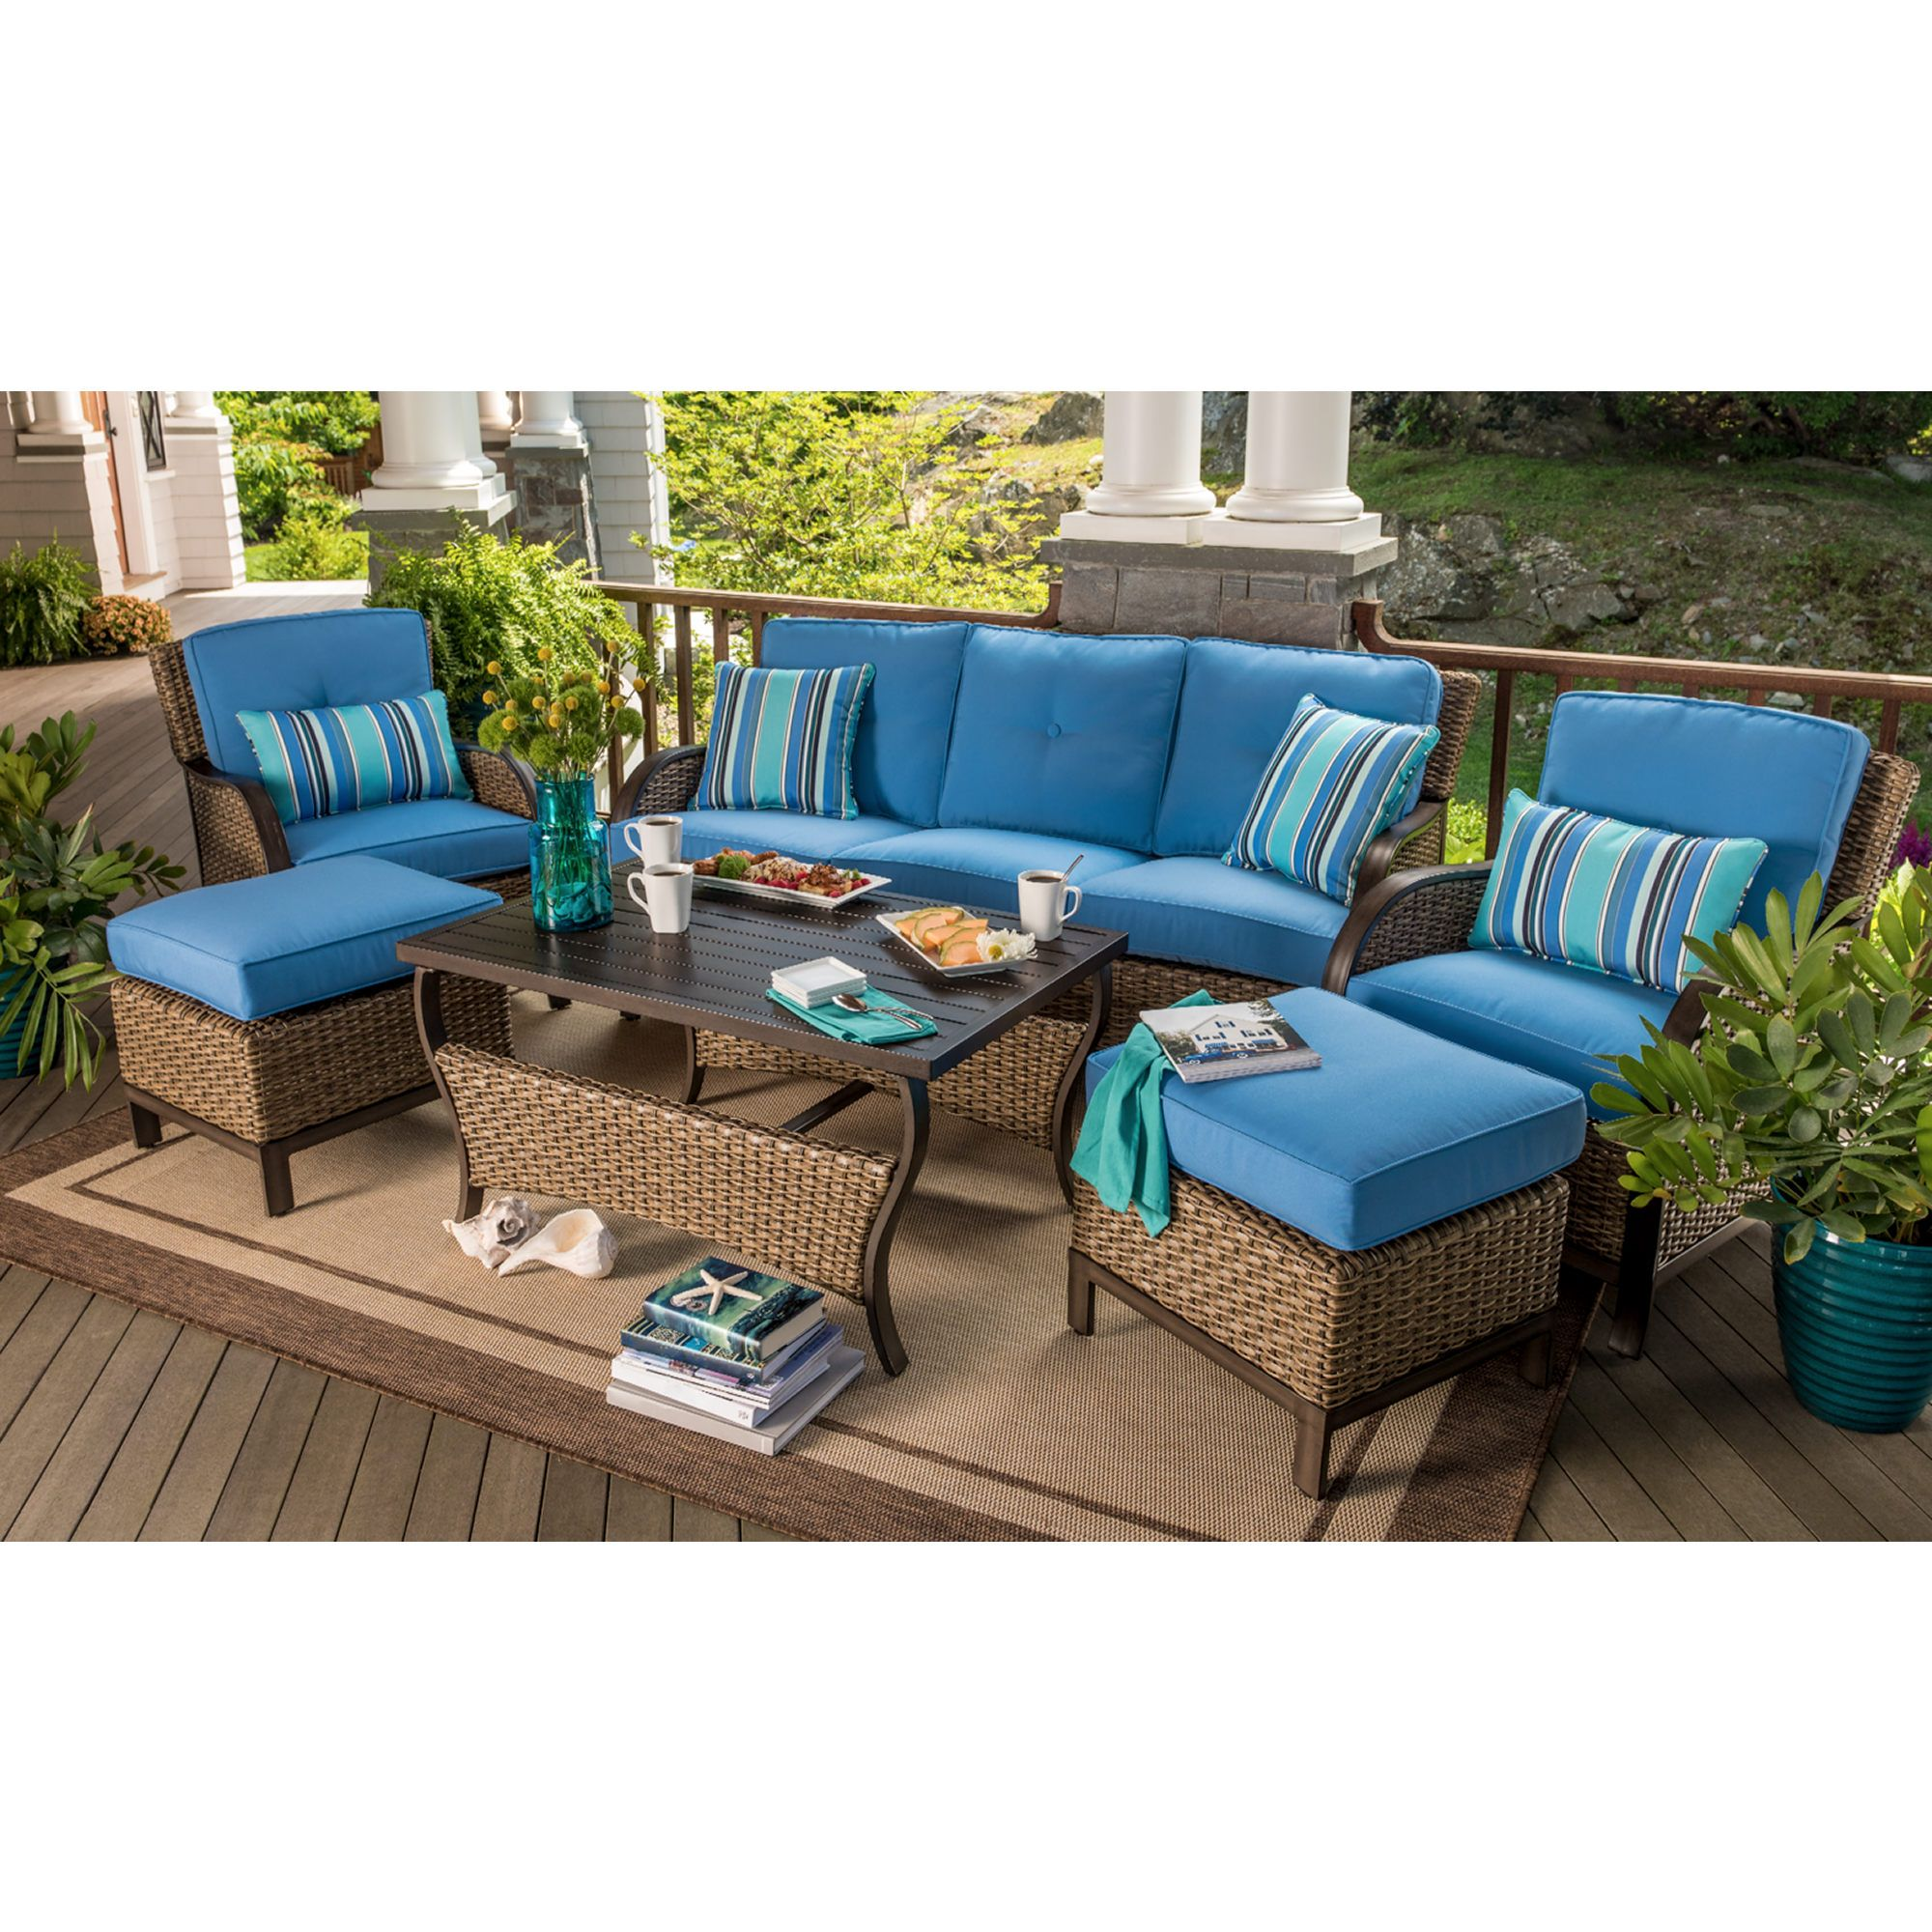 Berkley Jensen Nantucket 6 Piece Wicker Deep Seating Set in French